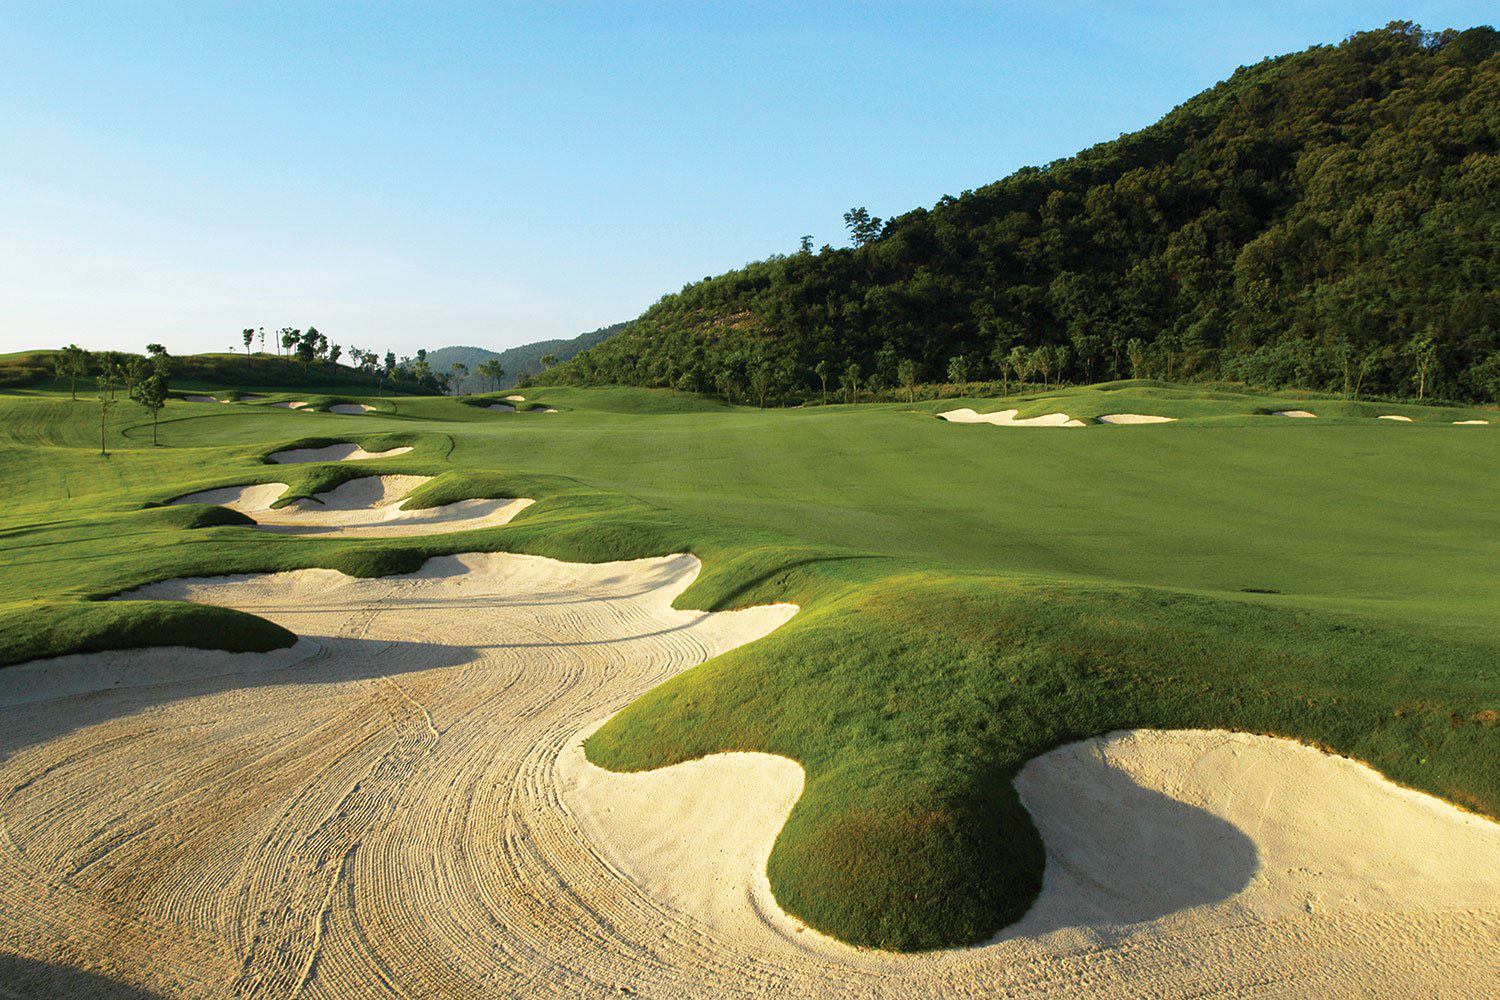 Annika-Golf-Course-Mission-Hills-Dongguan